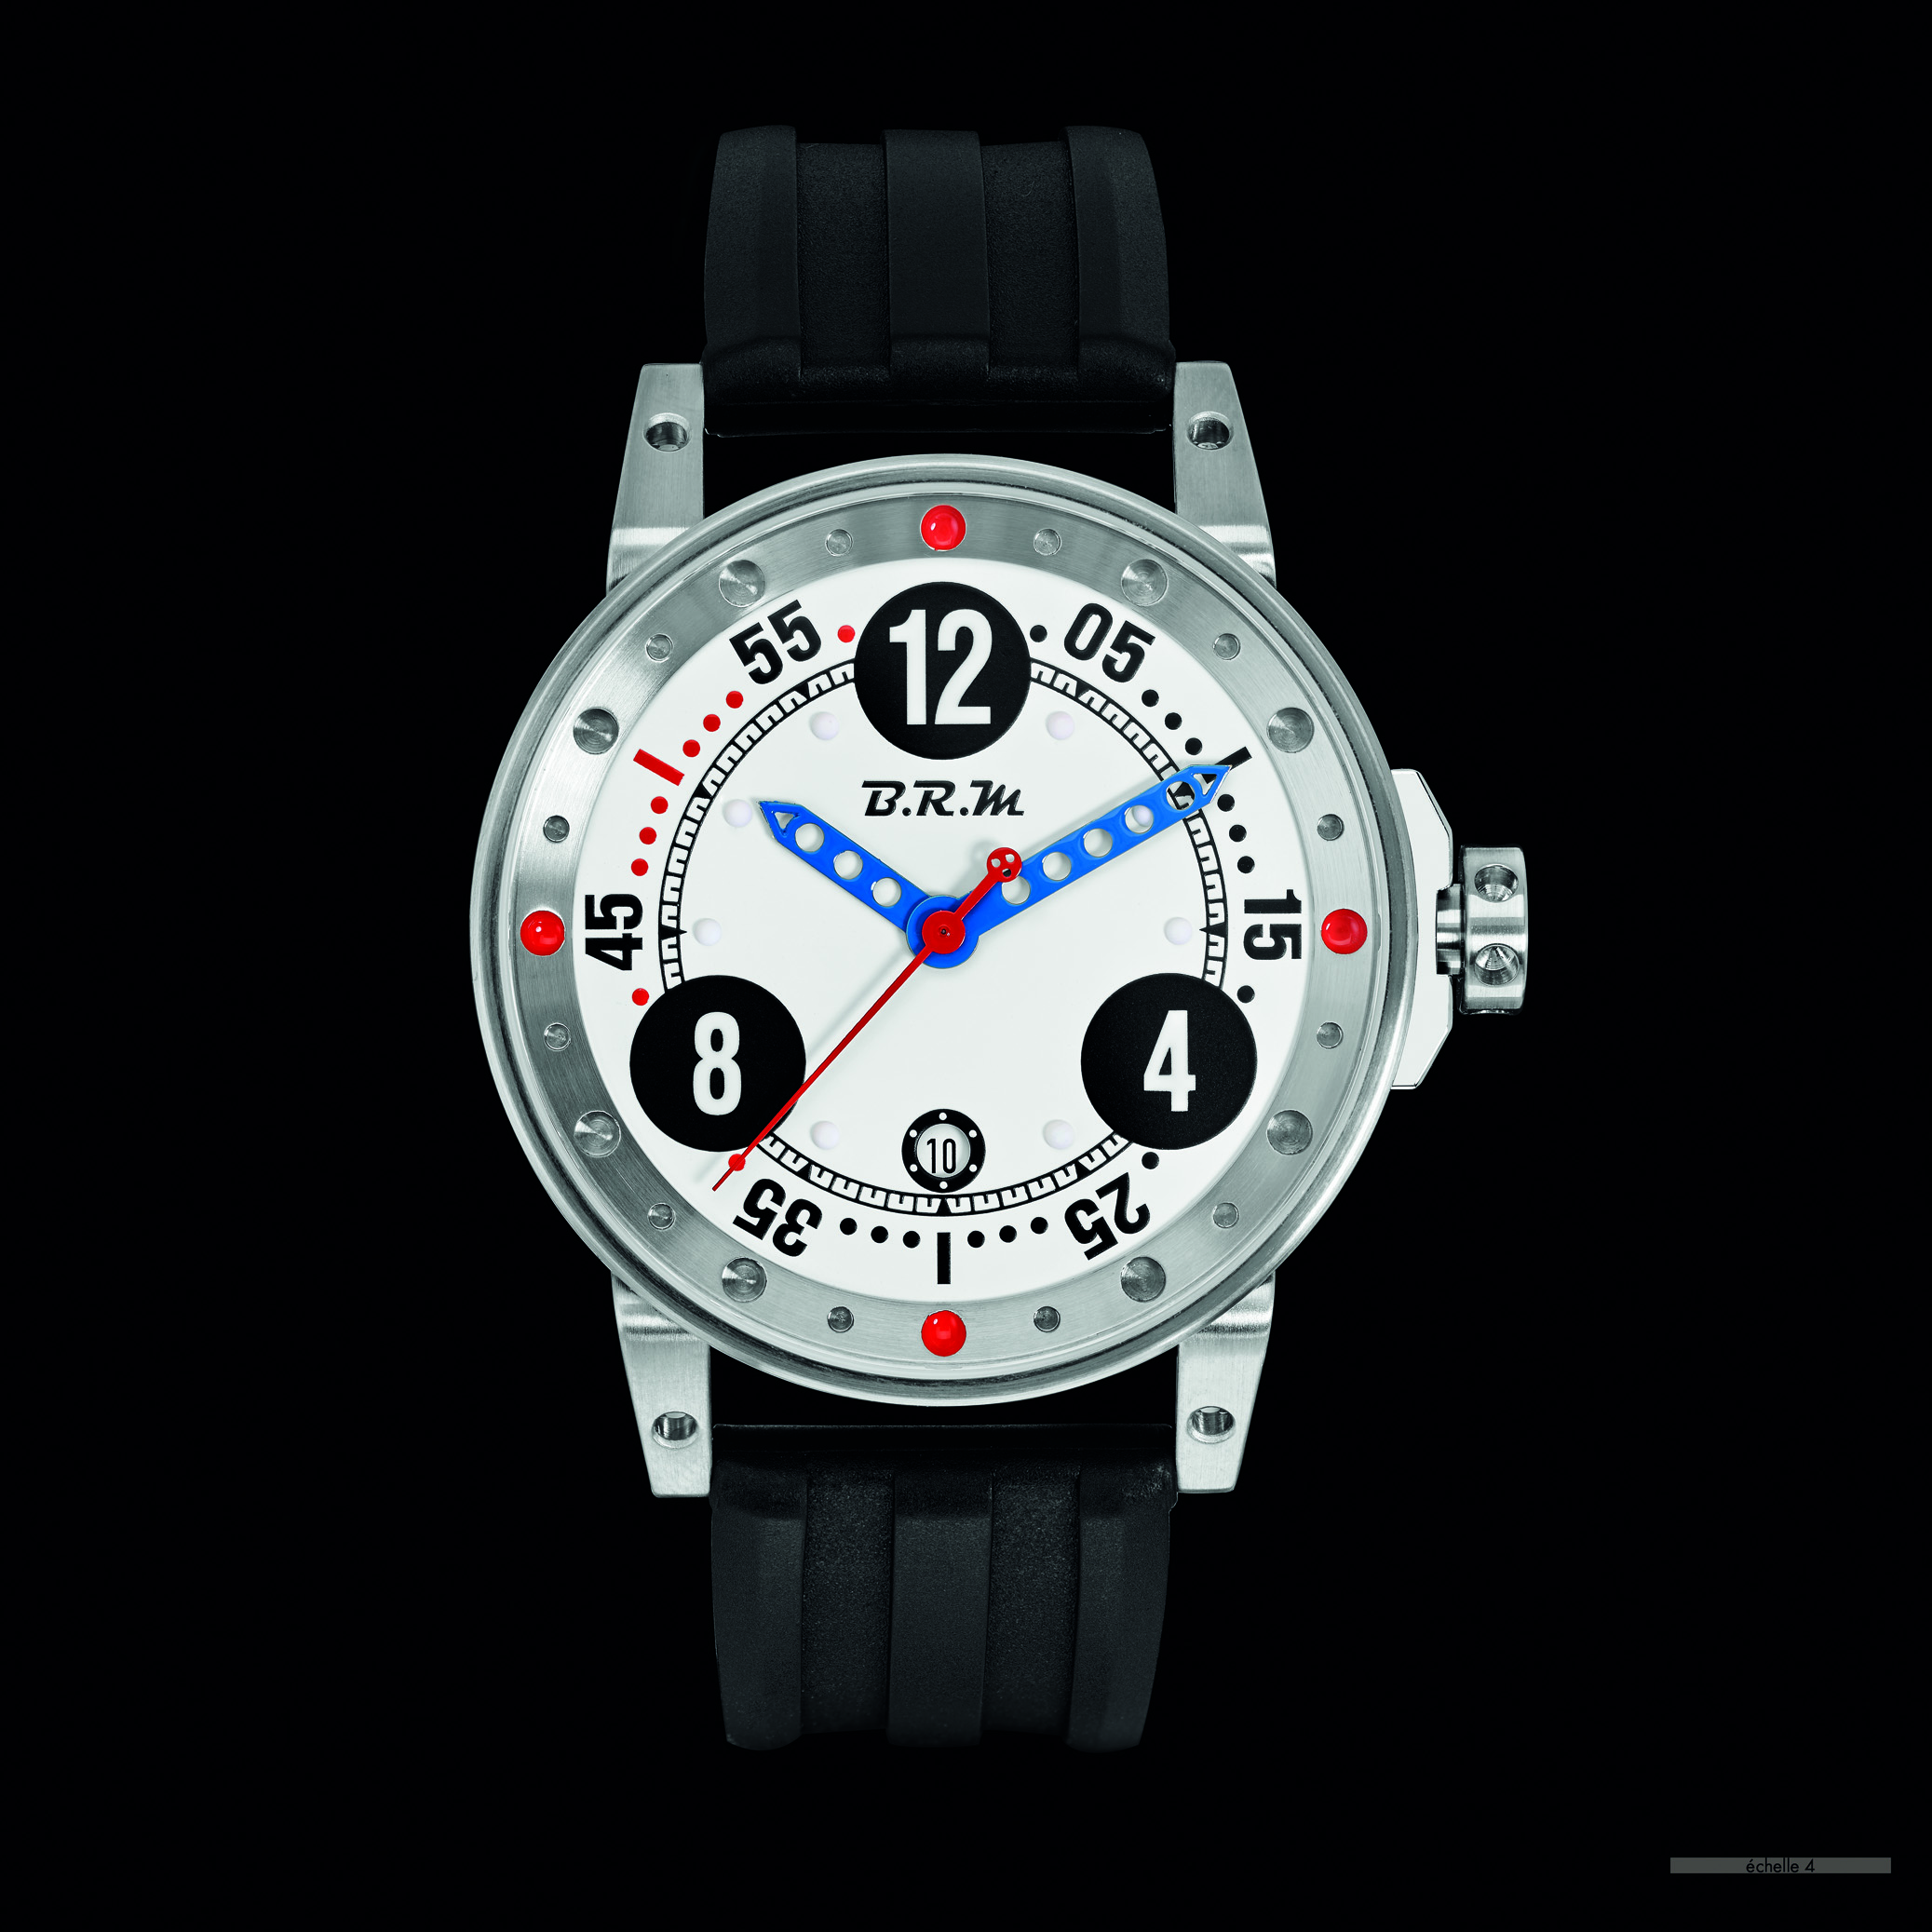 V6-44 Stand 21 Watch by B.R.M. Chronographes